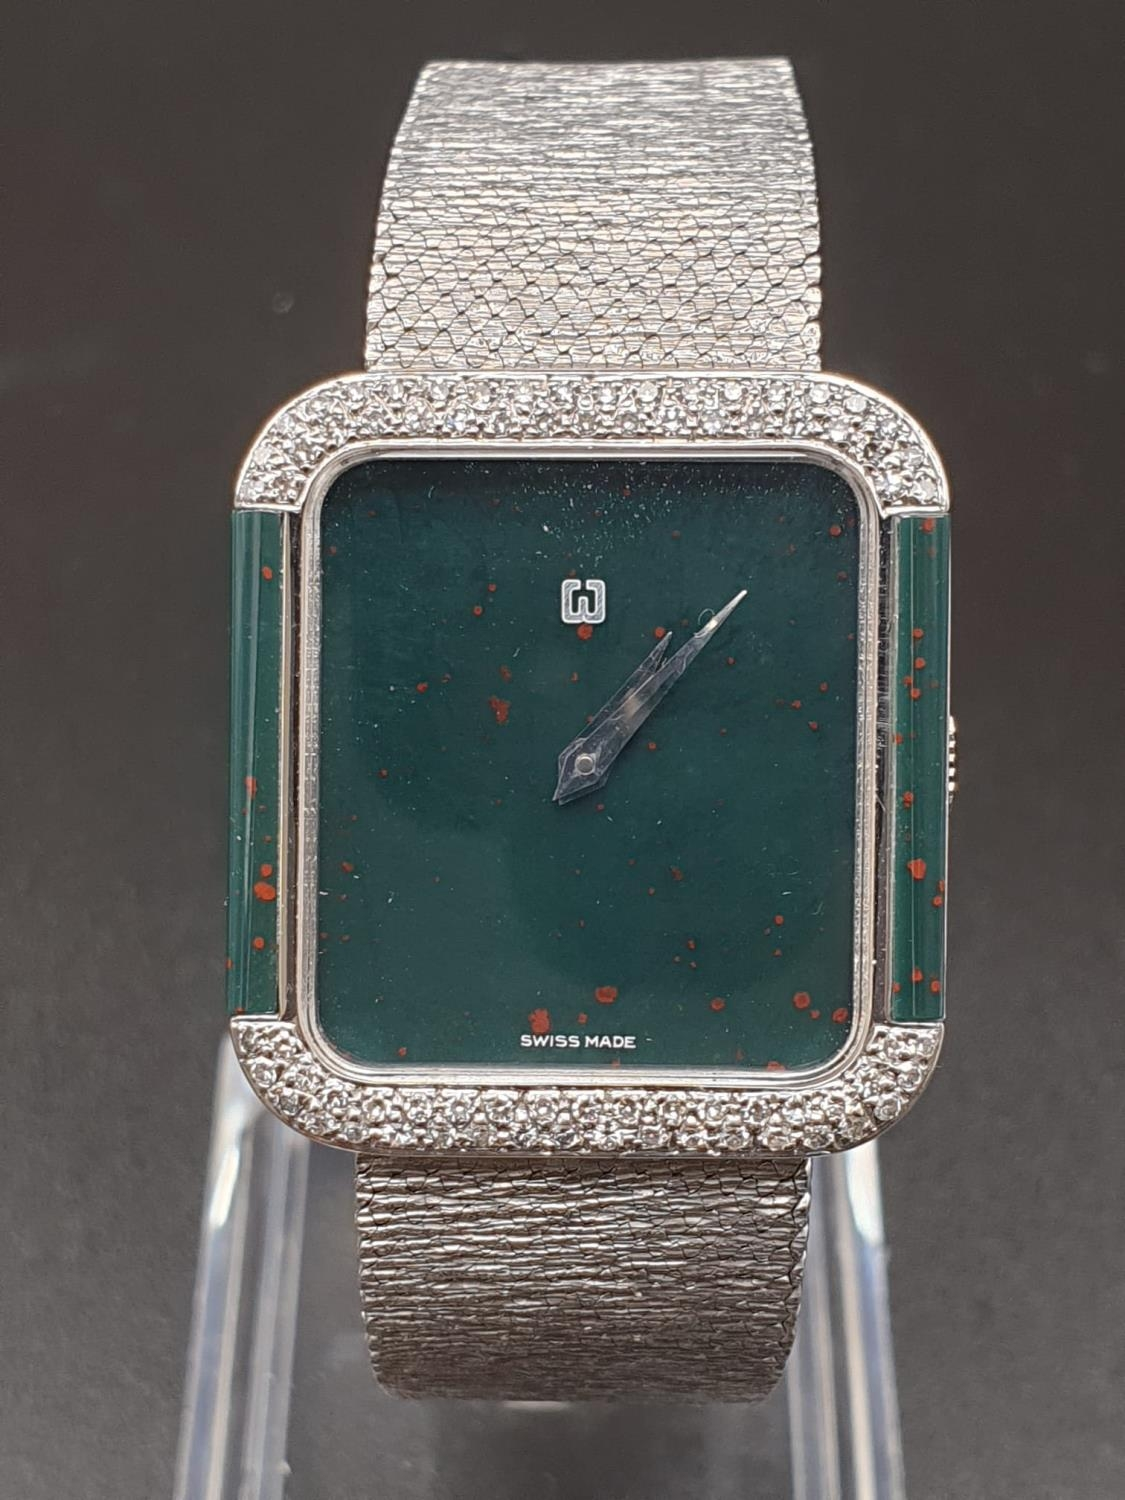 AN 18K WHITE GOLD DRESS WATCH WITH HALF DIAMOND BEZEL AND SOLID GOLD STRAP. 26MM